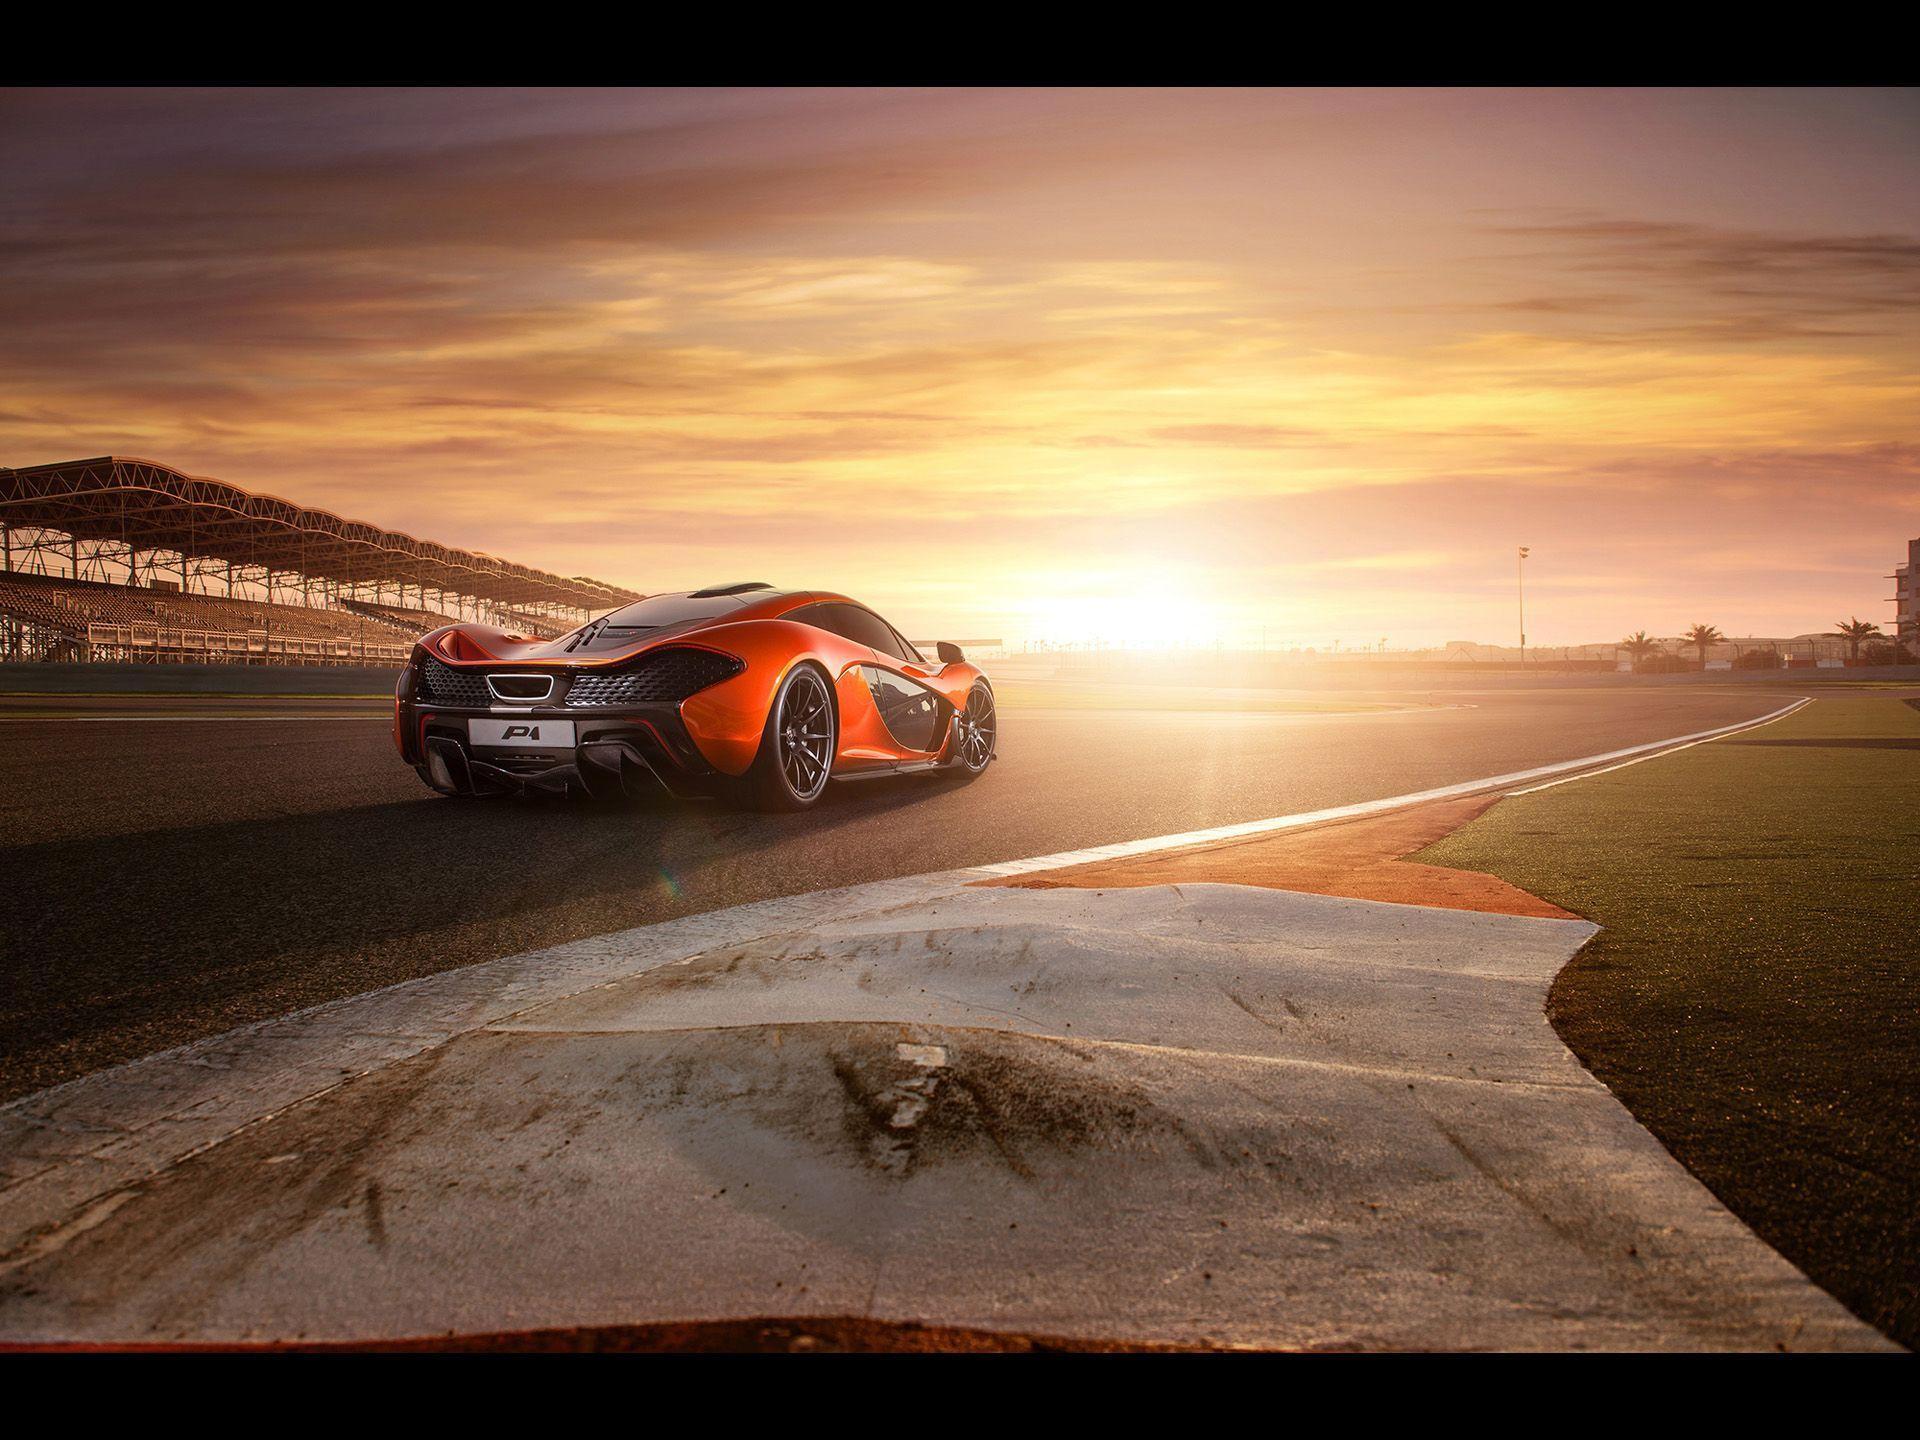 2013 McLaren P1 at Bahrain Static Rear Angle wallpapers | 2013 ...